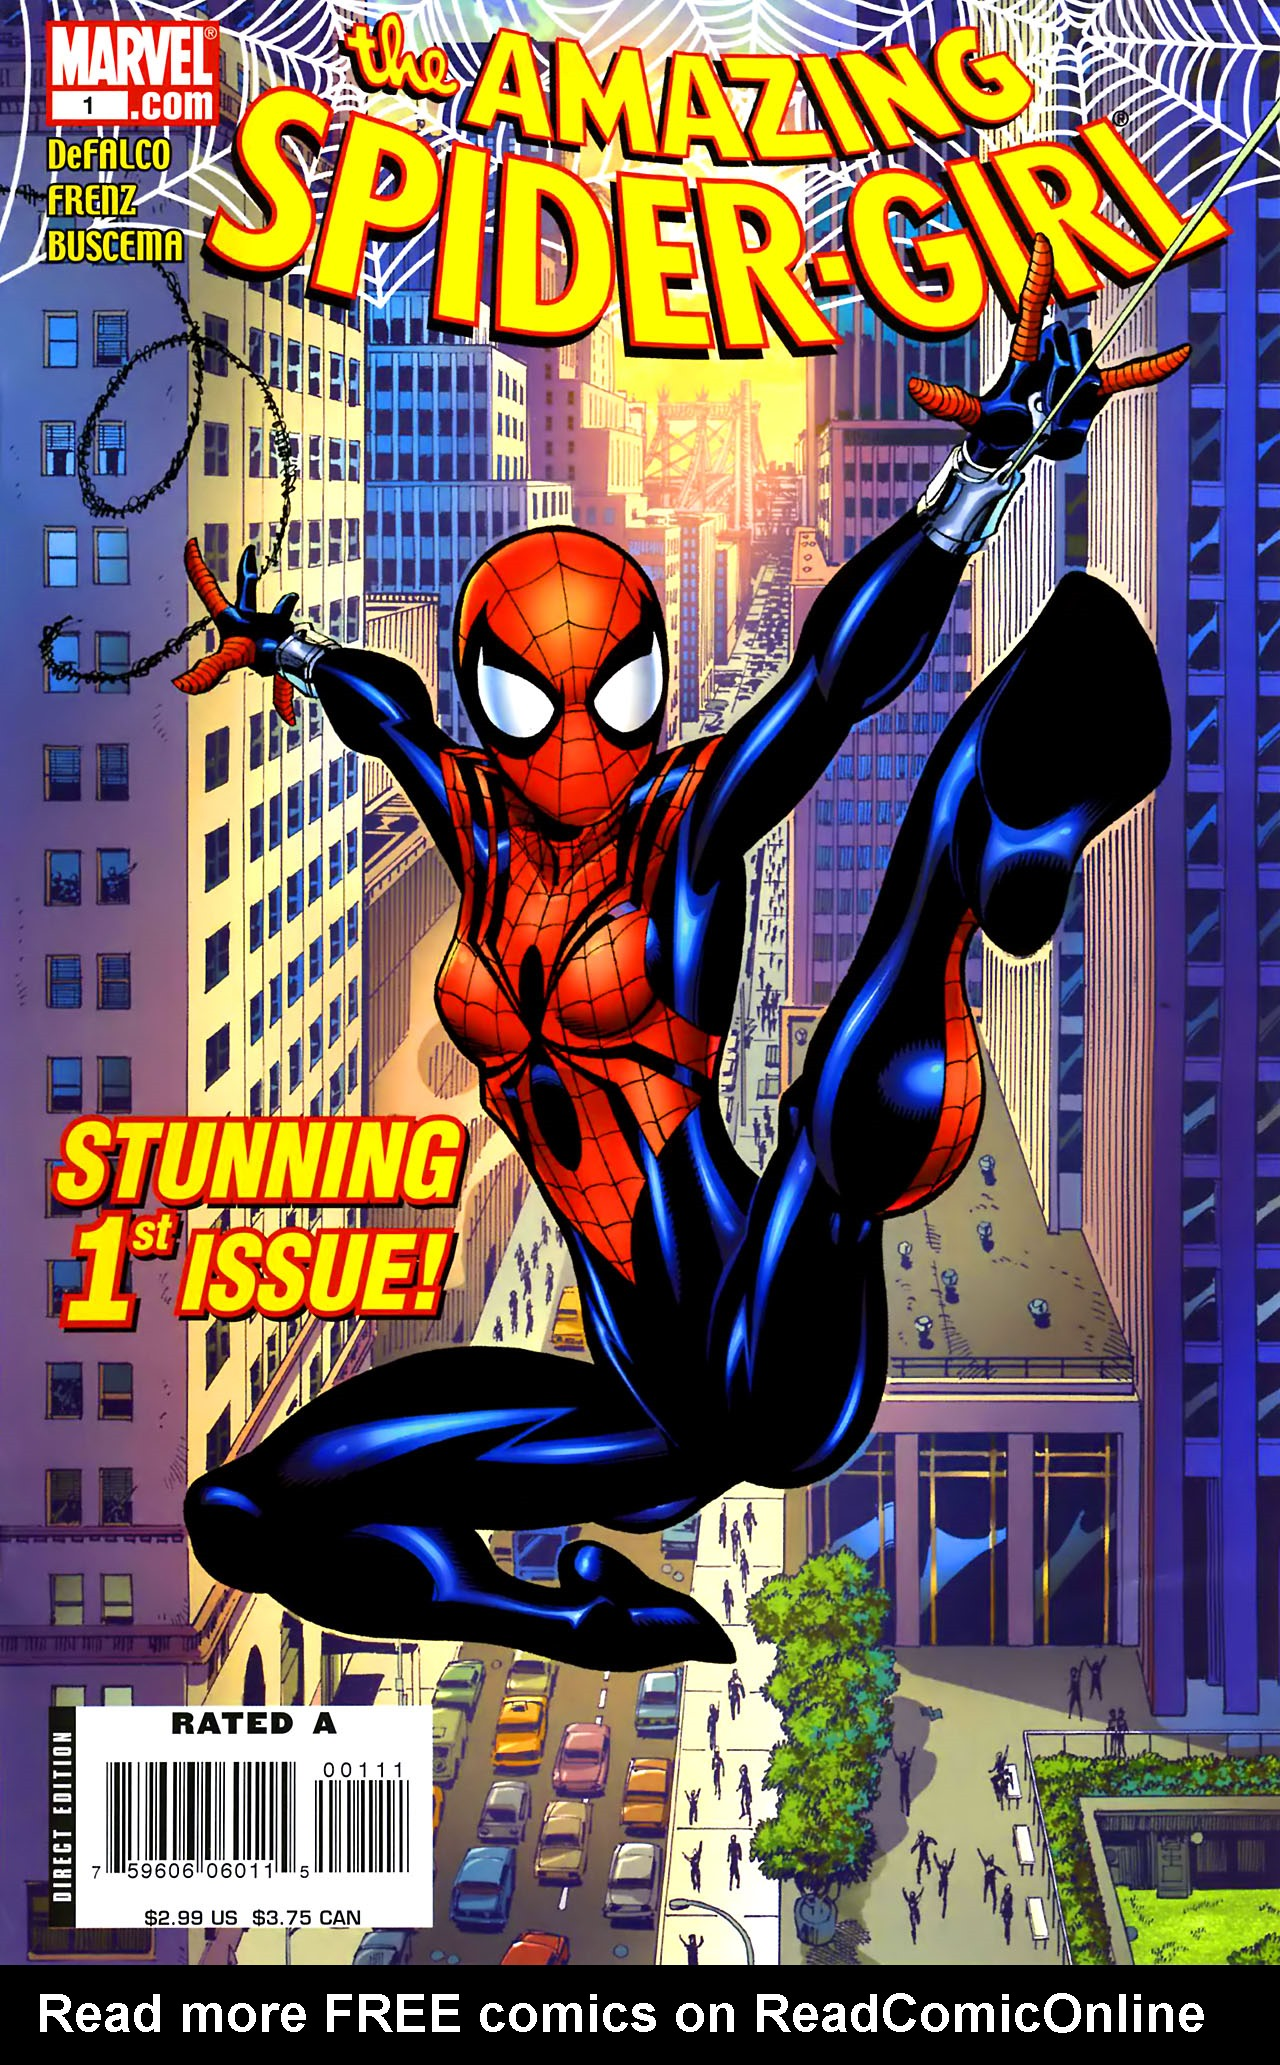 Amazing Spider-Girl 1 Page 1